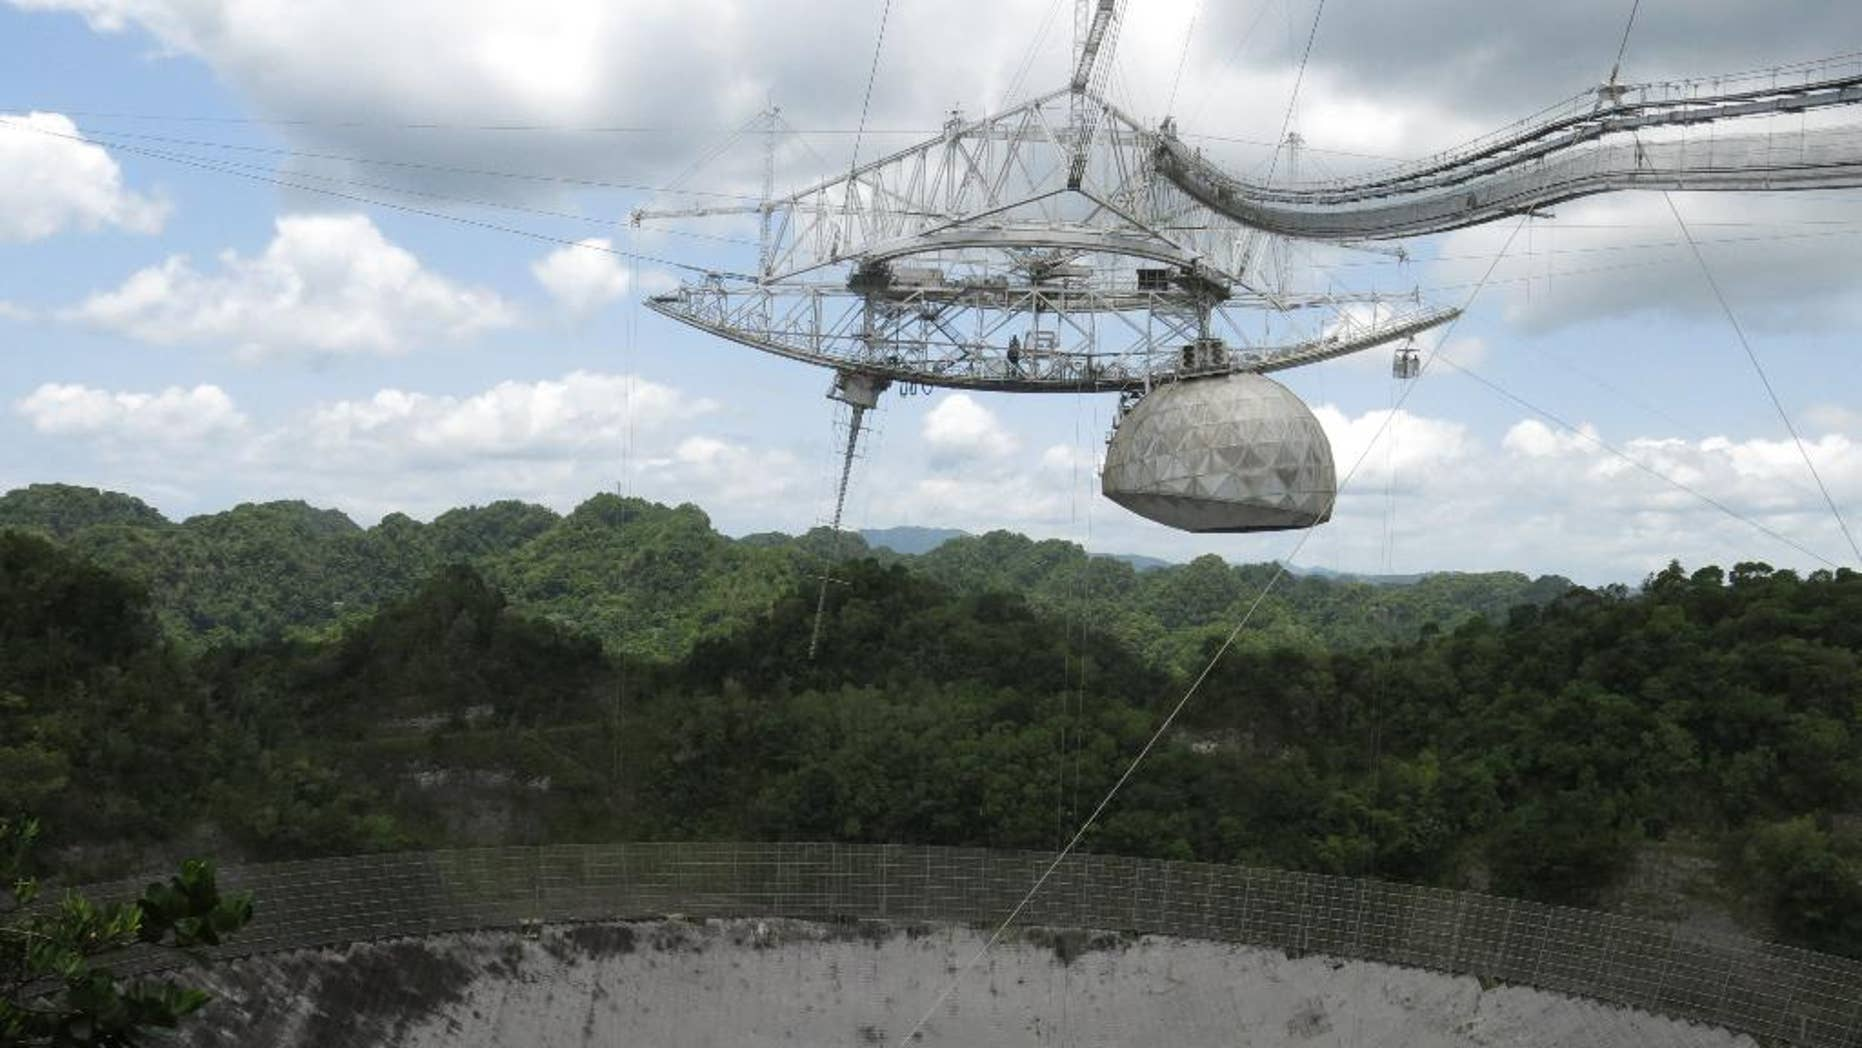 This July 13, 2016 photo shows the world's largest single-dish radio telescope at the Arecibo Observatory in Arecibo, Puerto Rico. Dwindling funds from the U.S. government and construction of bigger, more powerful telescopes in places like China and Chile are threatening this telescope's existence. It performs tasks like searching for gravitational waves, listening for extraterrestrial signals and tracking asteroids that might be on a collision course with Earth.  (AP Photo/Danica Coto)